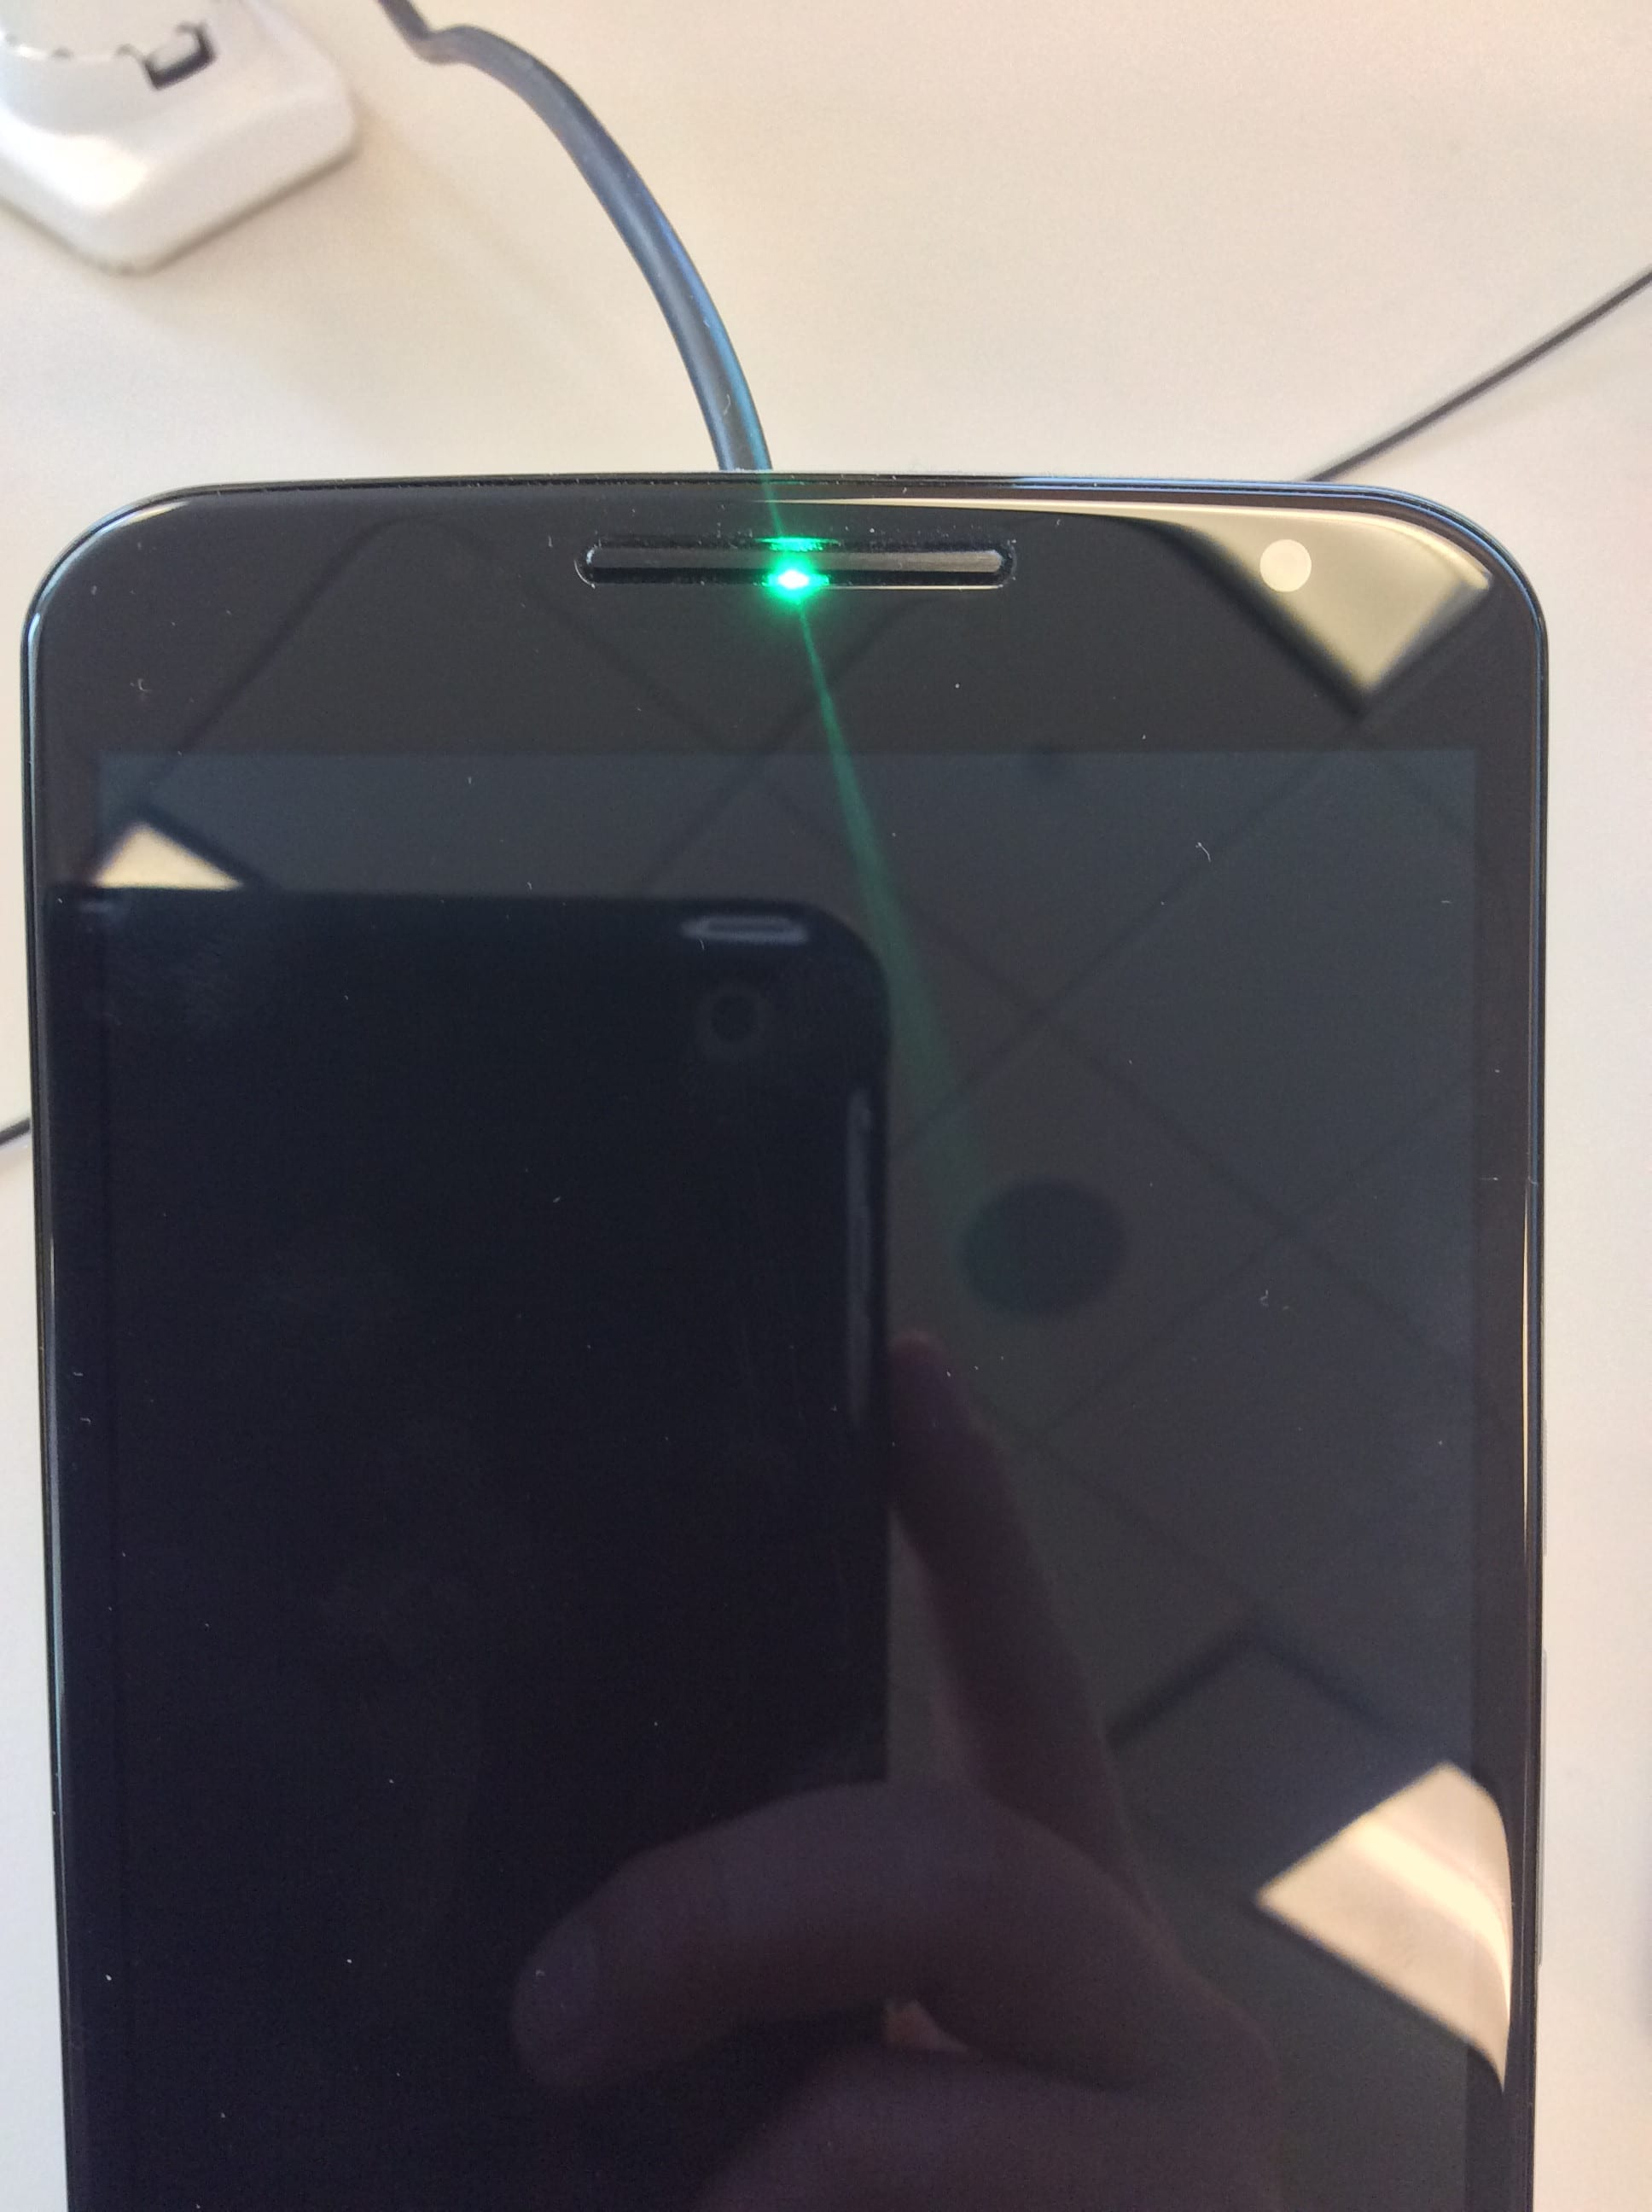 LED notificaciones Nexus 6 (1)